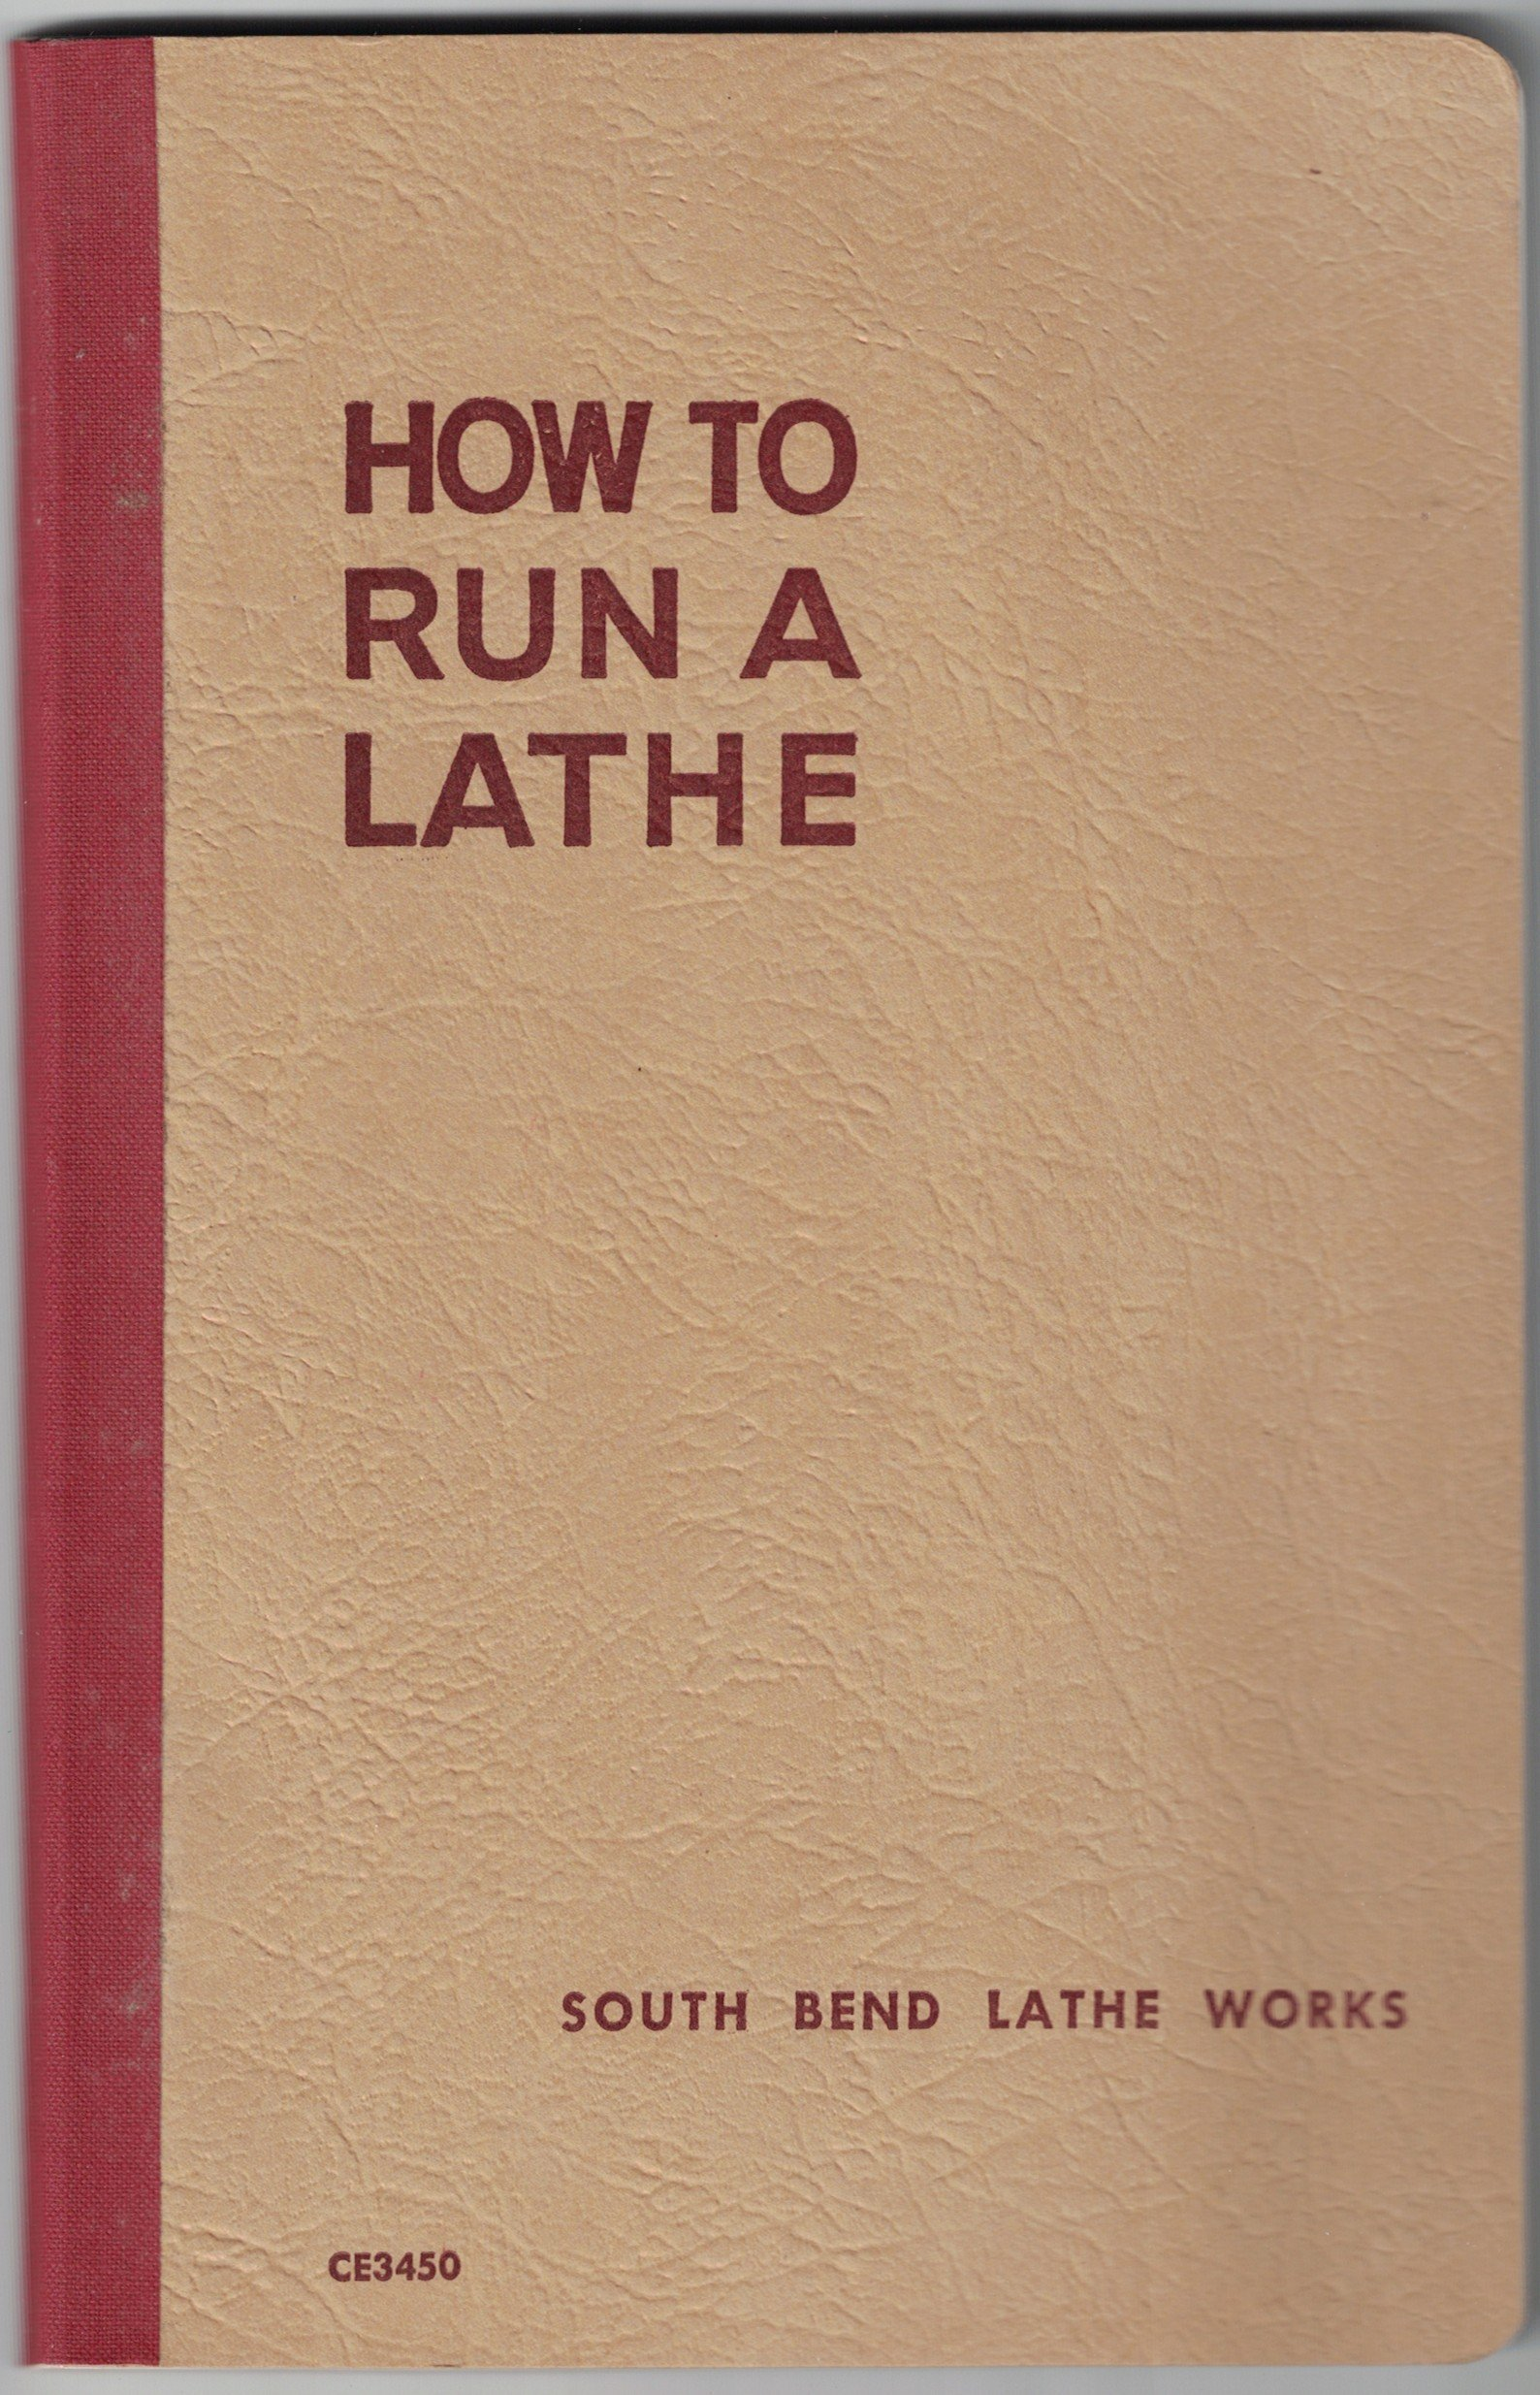 How to Run a Lathe:  The Care and Operation of a Screw-Cutting Lathe: Volume I: Edition 53